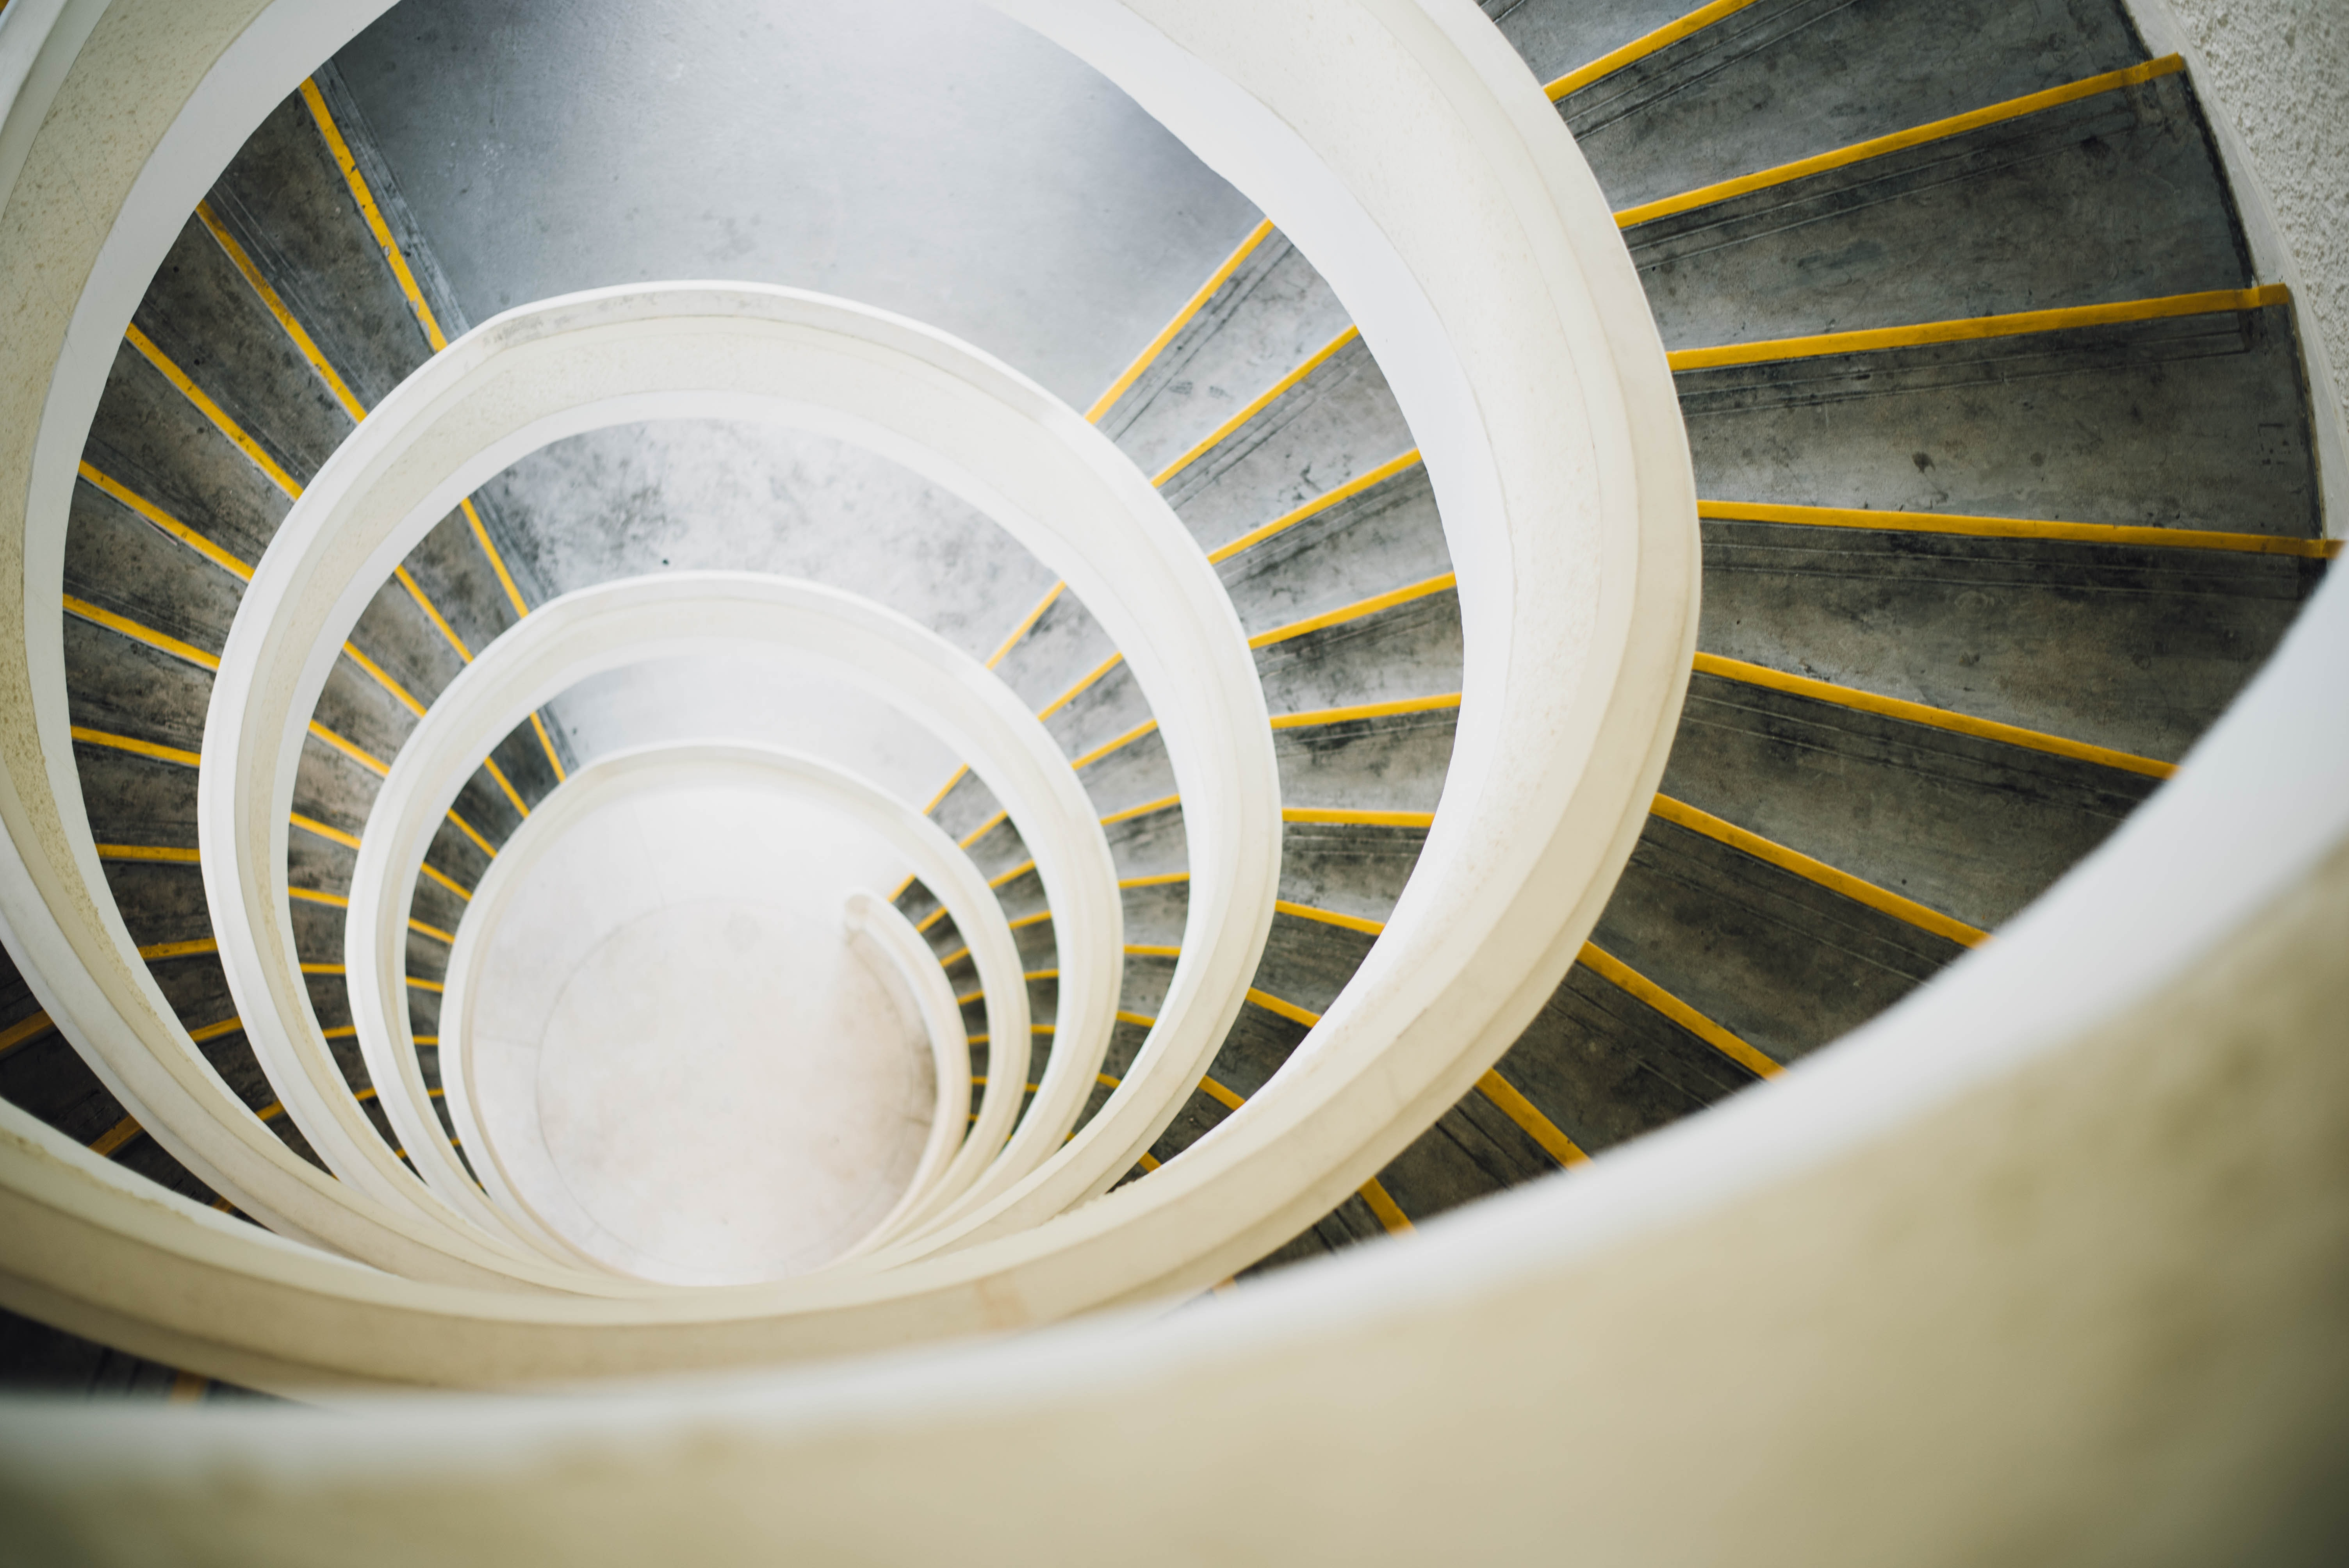 A white, grey, and yellow spiral staircase